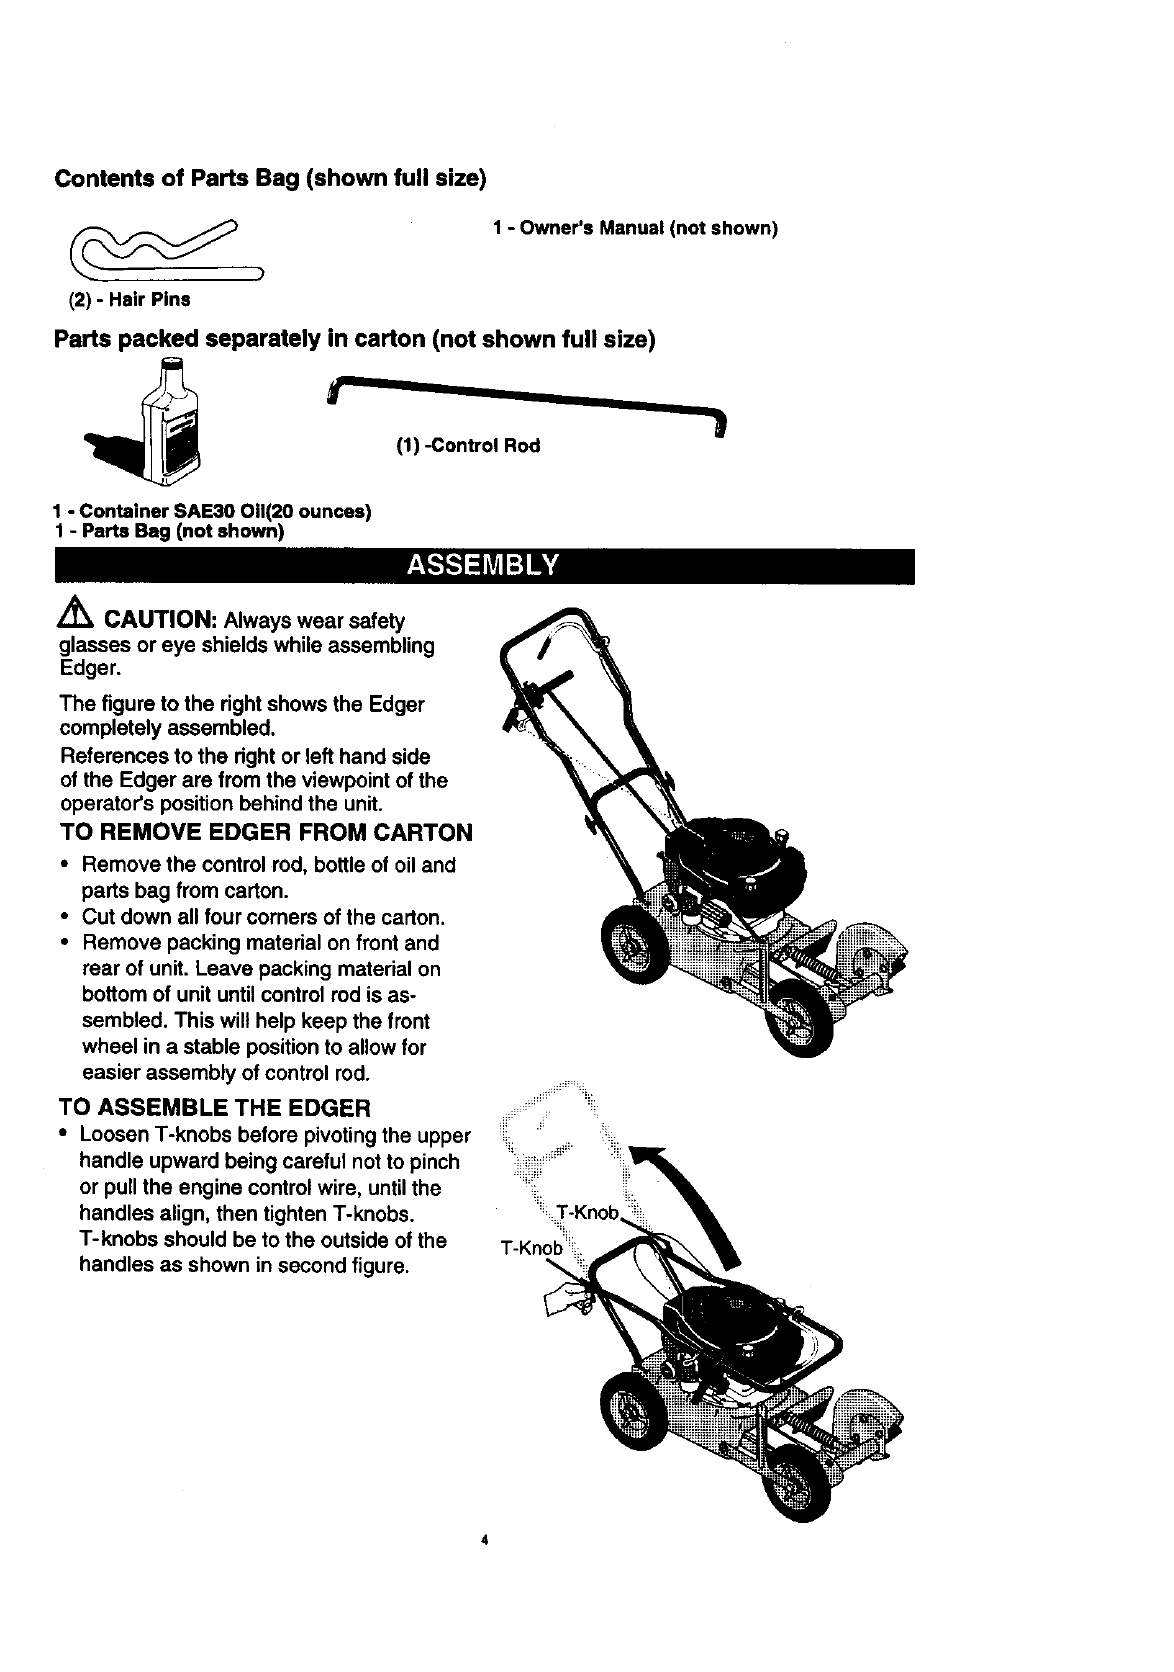 Page 4 of Craftsman Edger 536.7722 User Guide